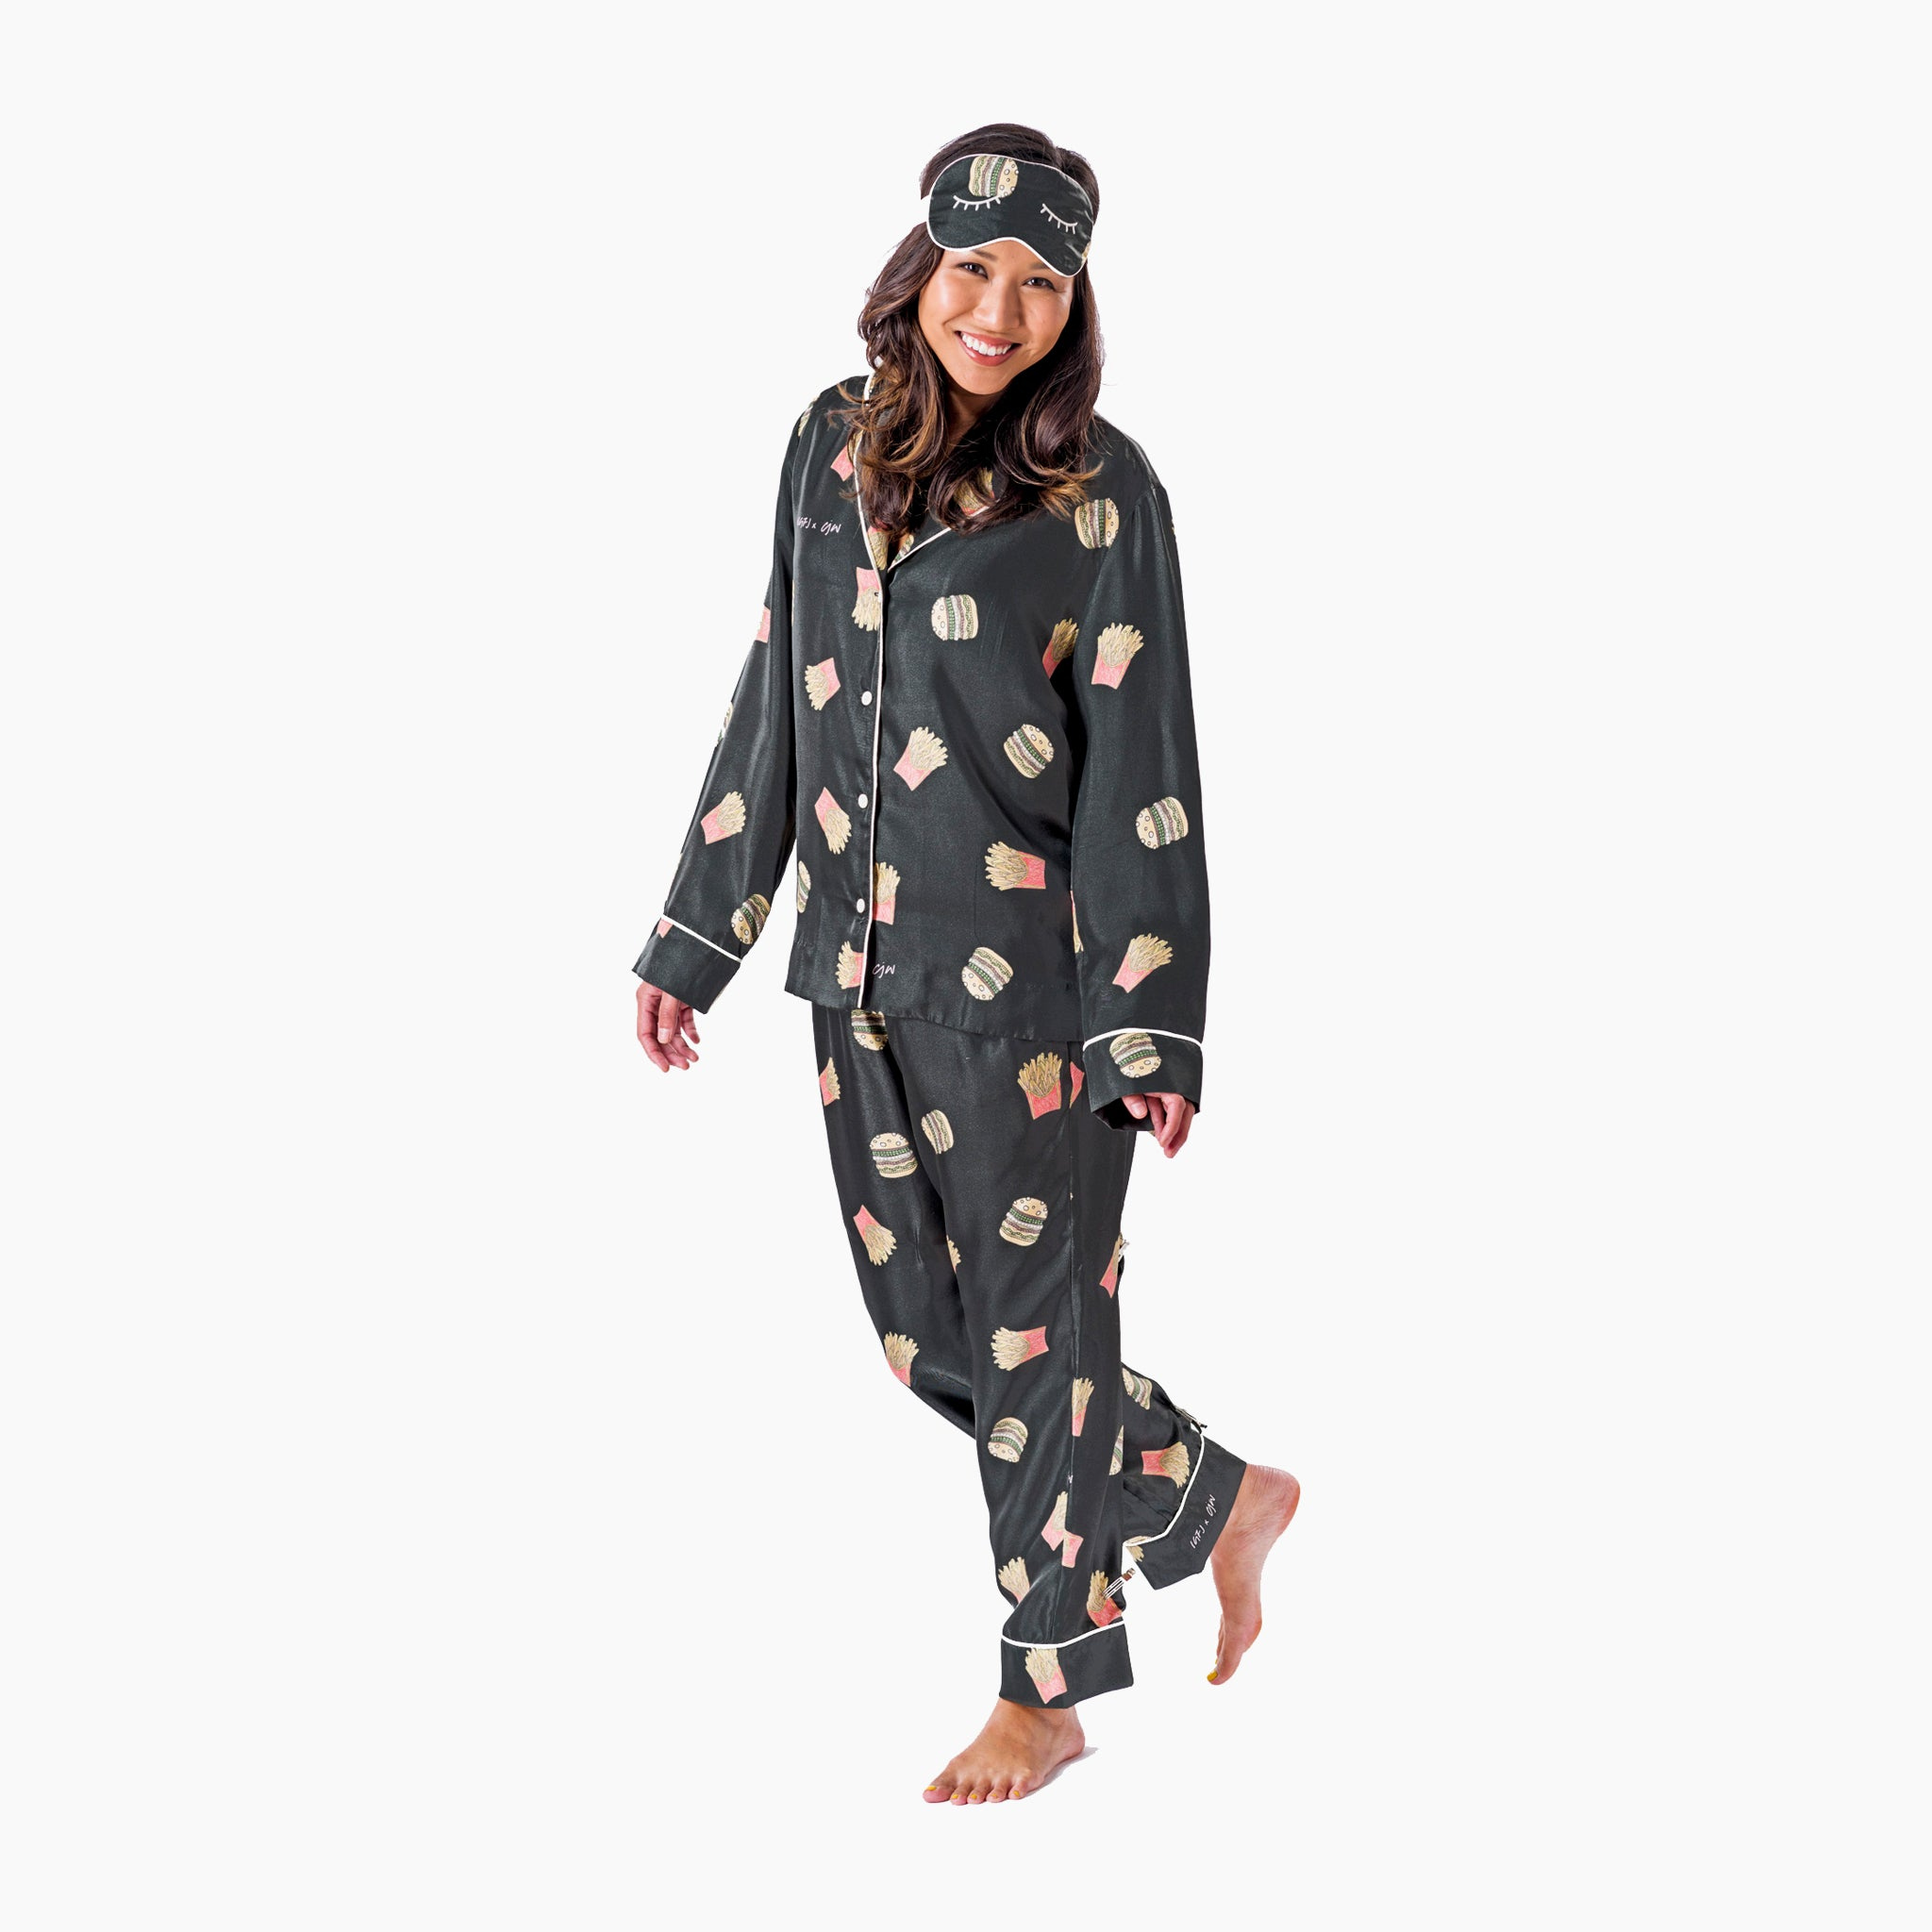 Nadine Ghosn x CJW Burger + Fries Pajama Set